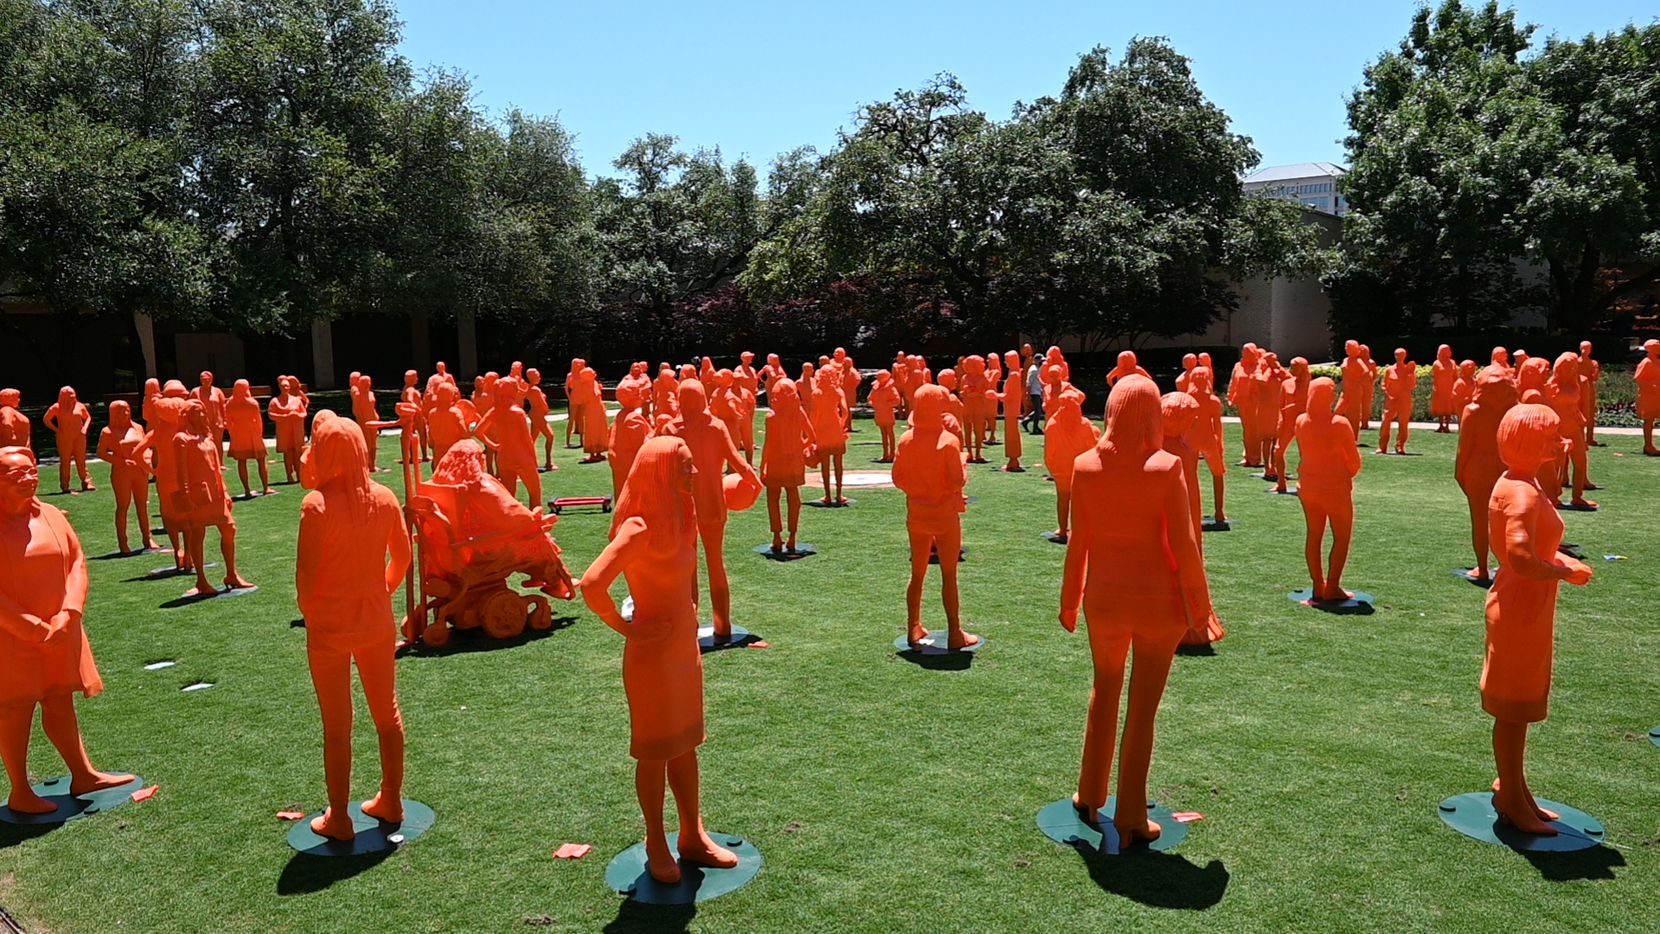 More than 100 statues of women scientists are assembled on the courtyard lawn at NorthPark for '#IfThenSheCan --The Exhibit', which runs through October.